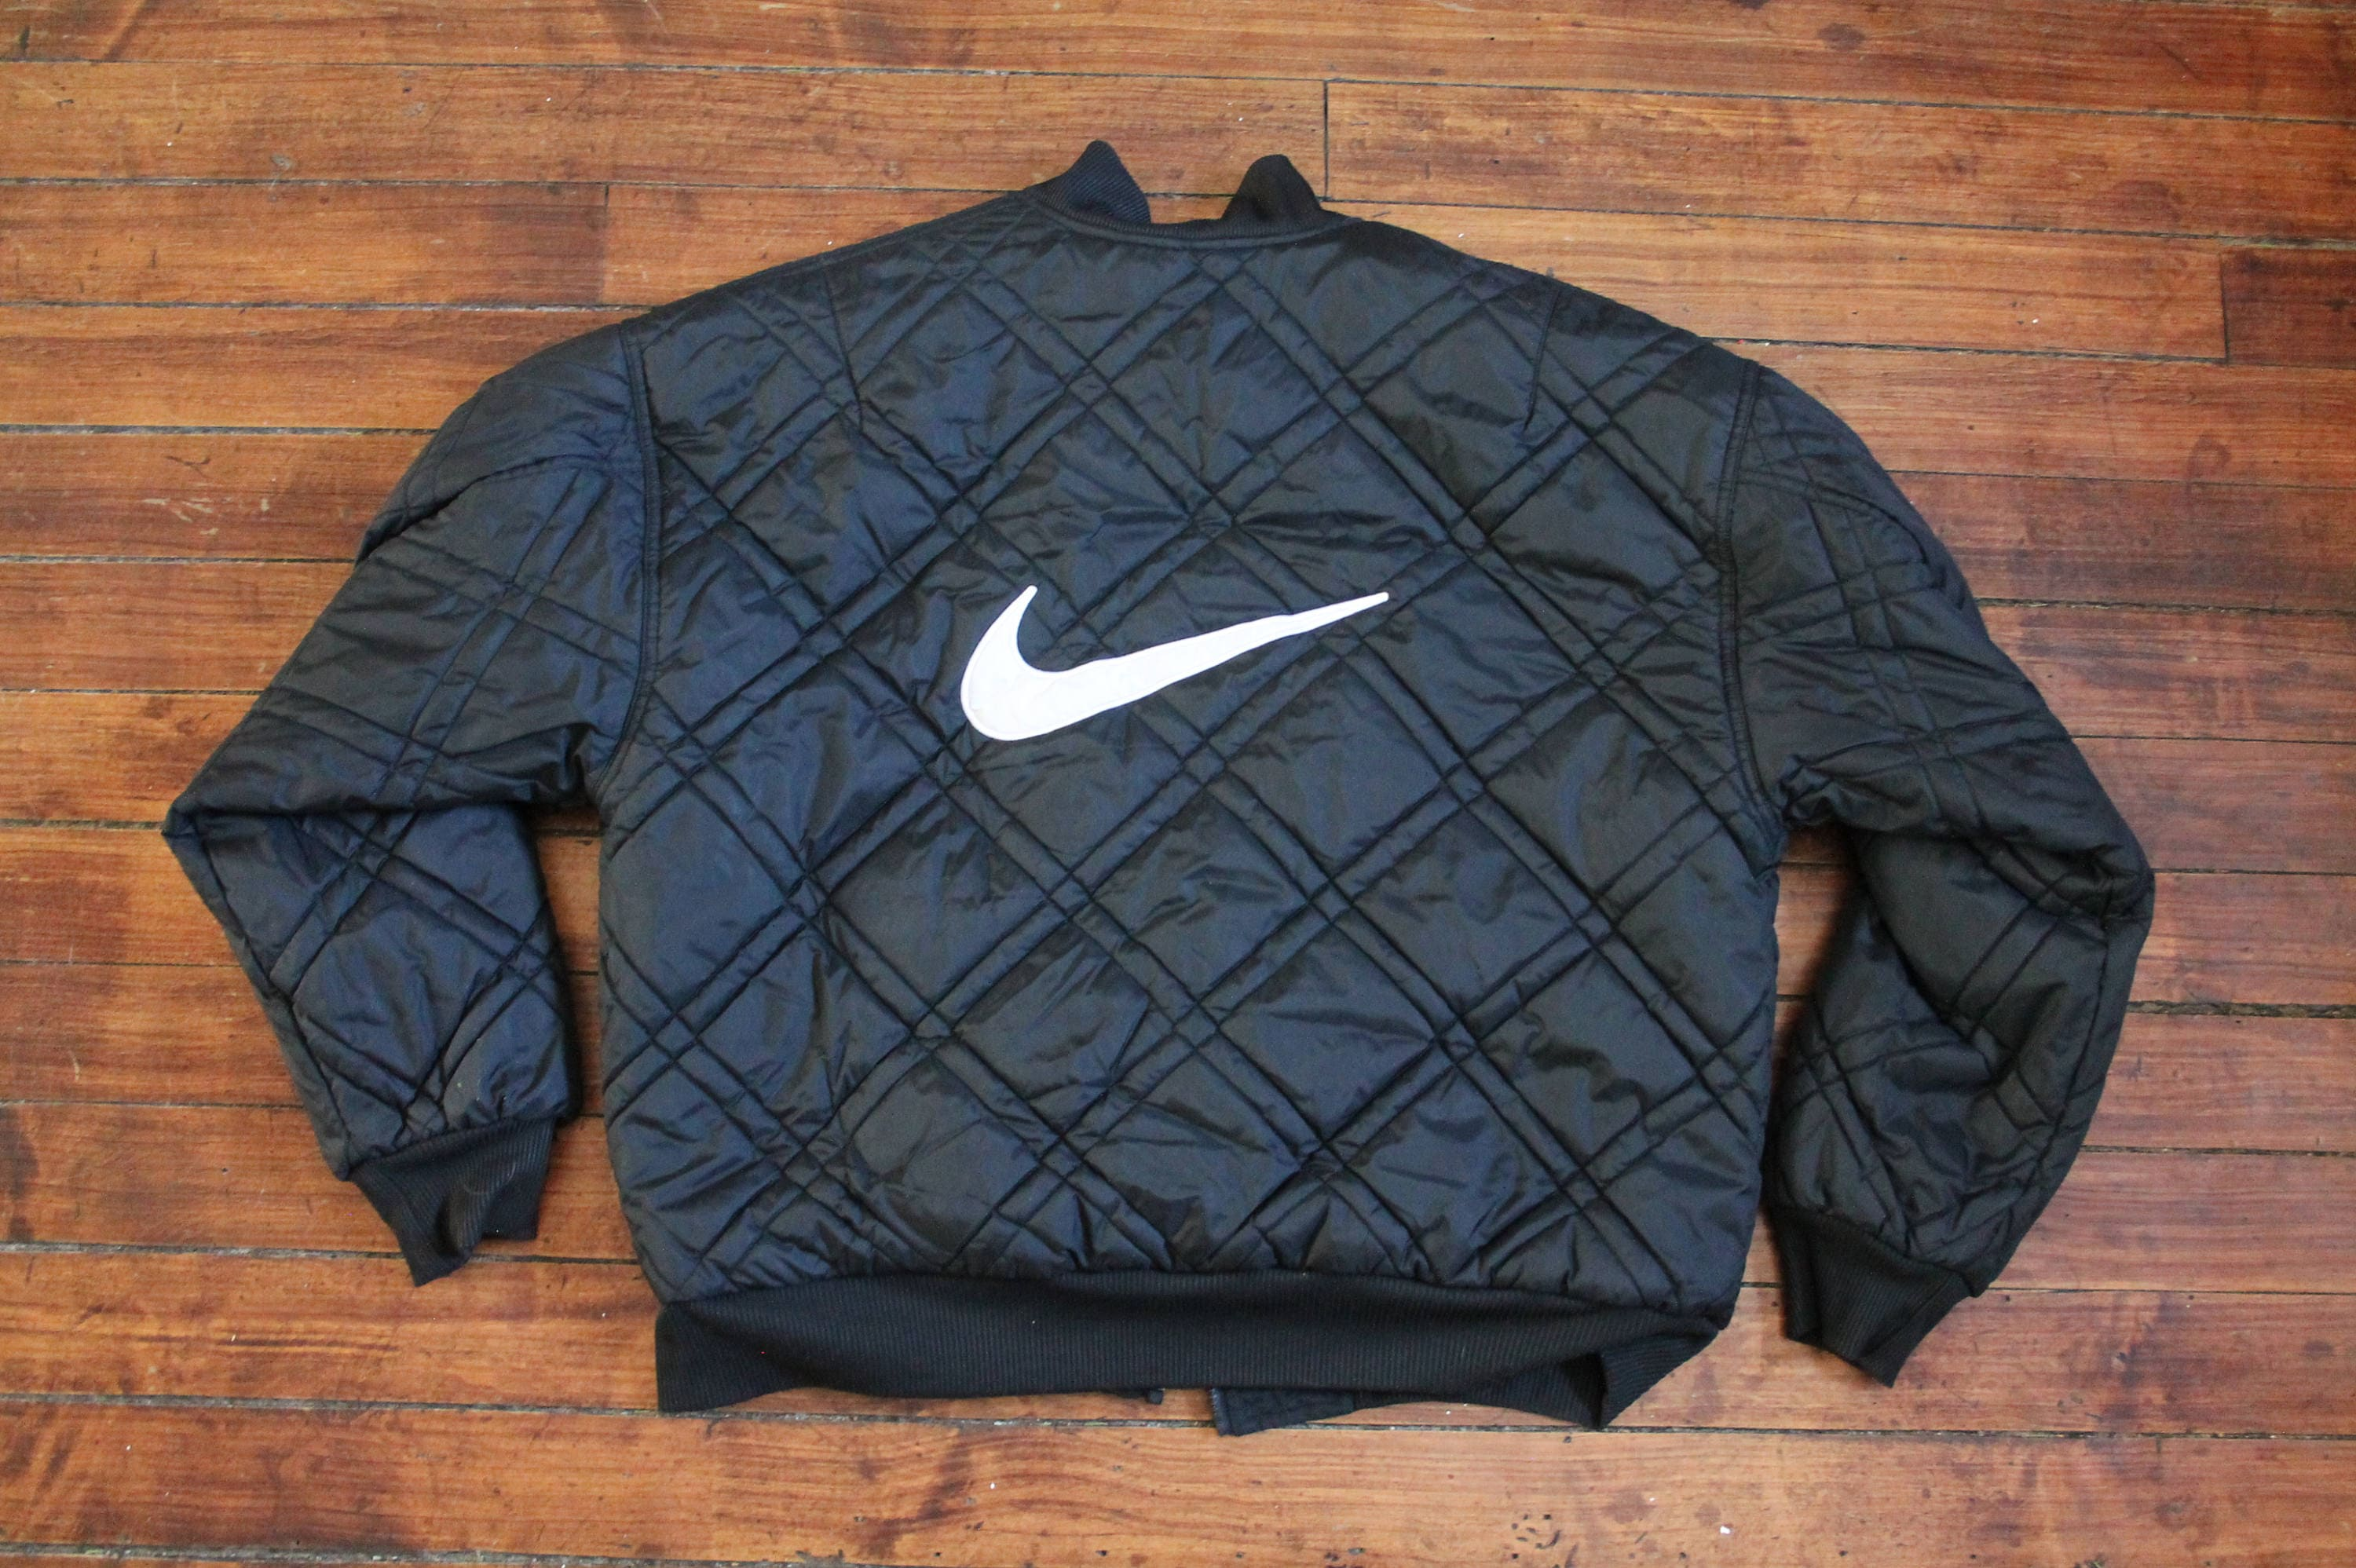 15927202dc33 Nike Winter jacket Reversible puffer coat quilted vintage mens